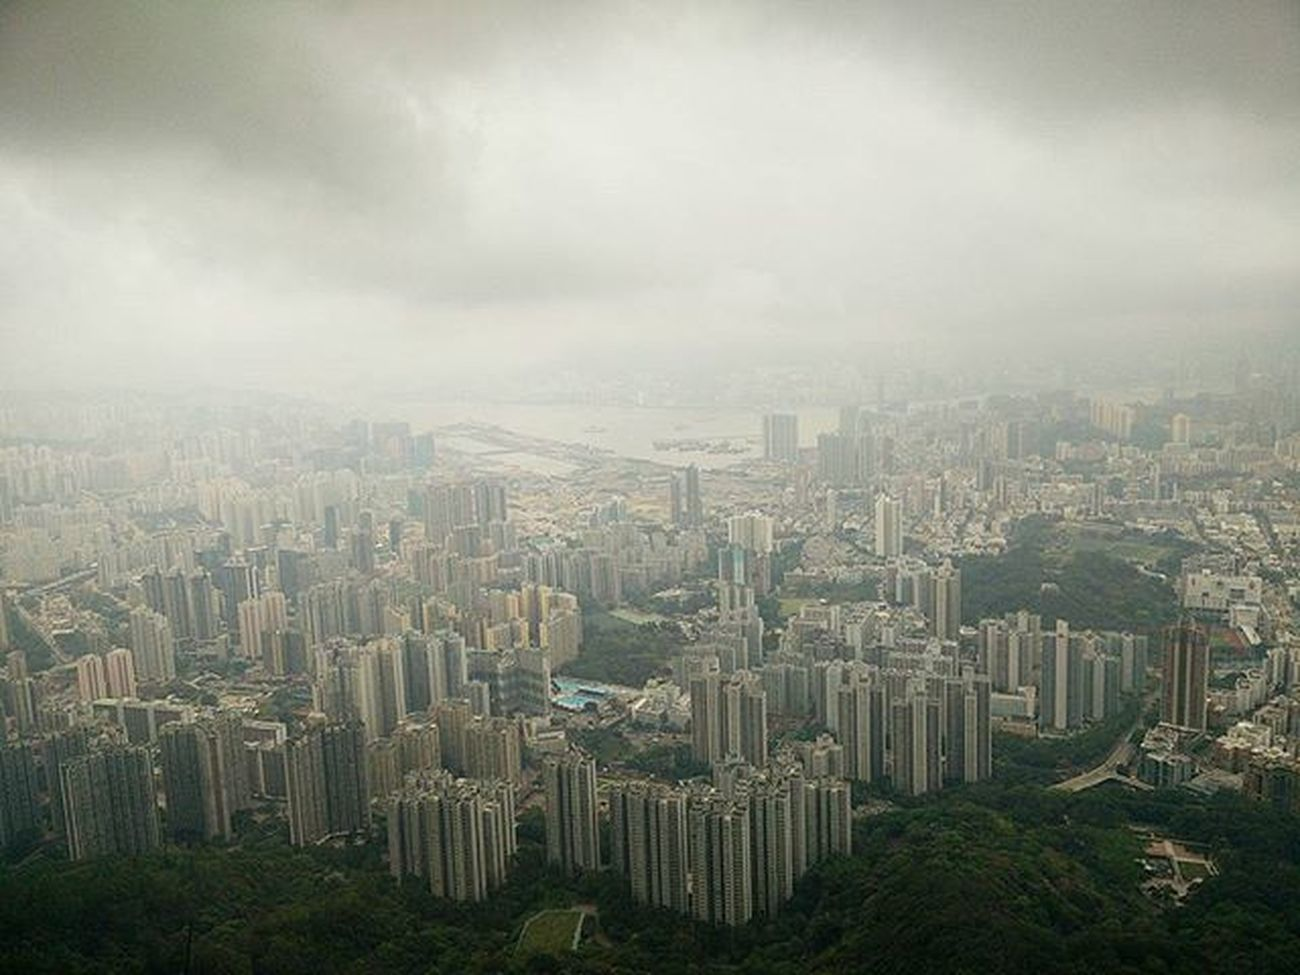 ☁🏙☁ View from Lionrock 🦁 on a very Cloudy day Hiking Shatin Hkig